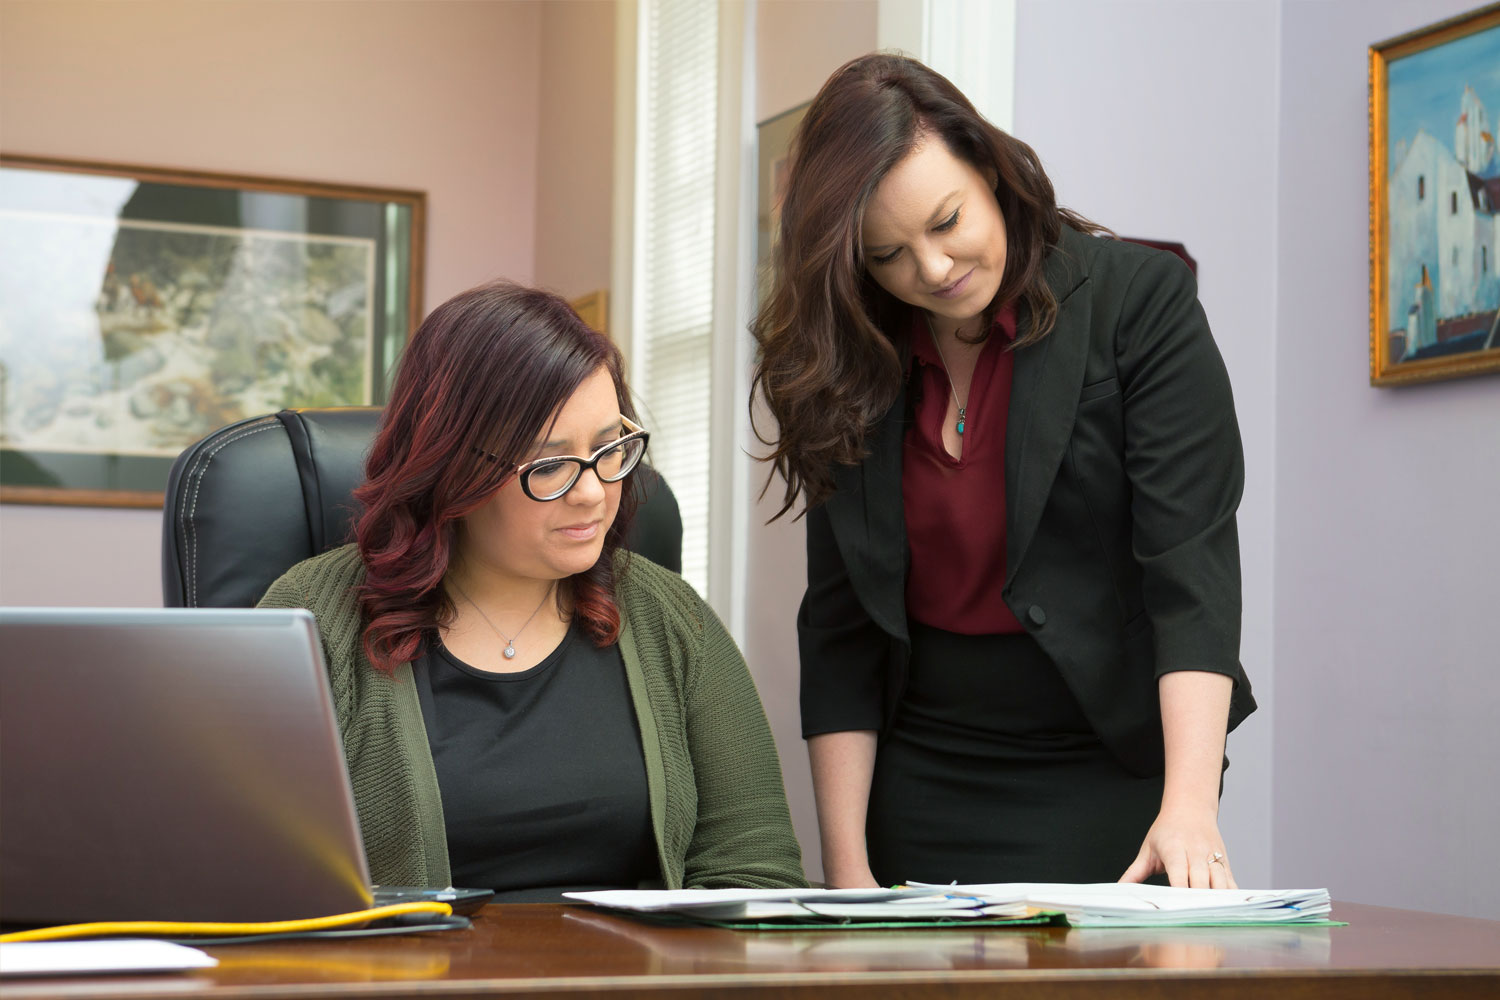 Legal counsel at Littman Family Law